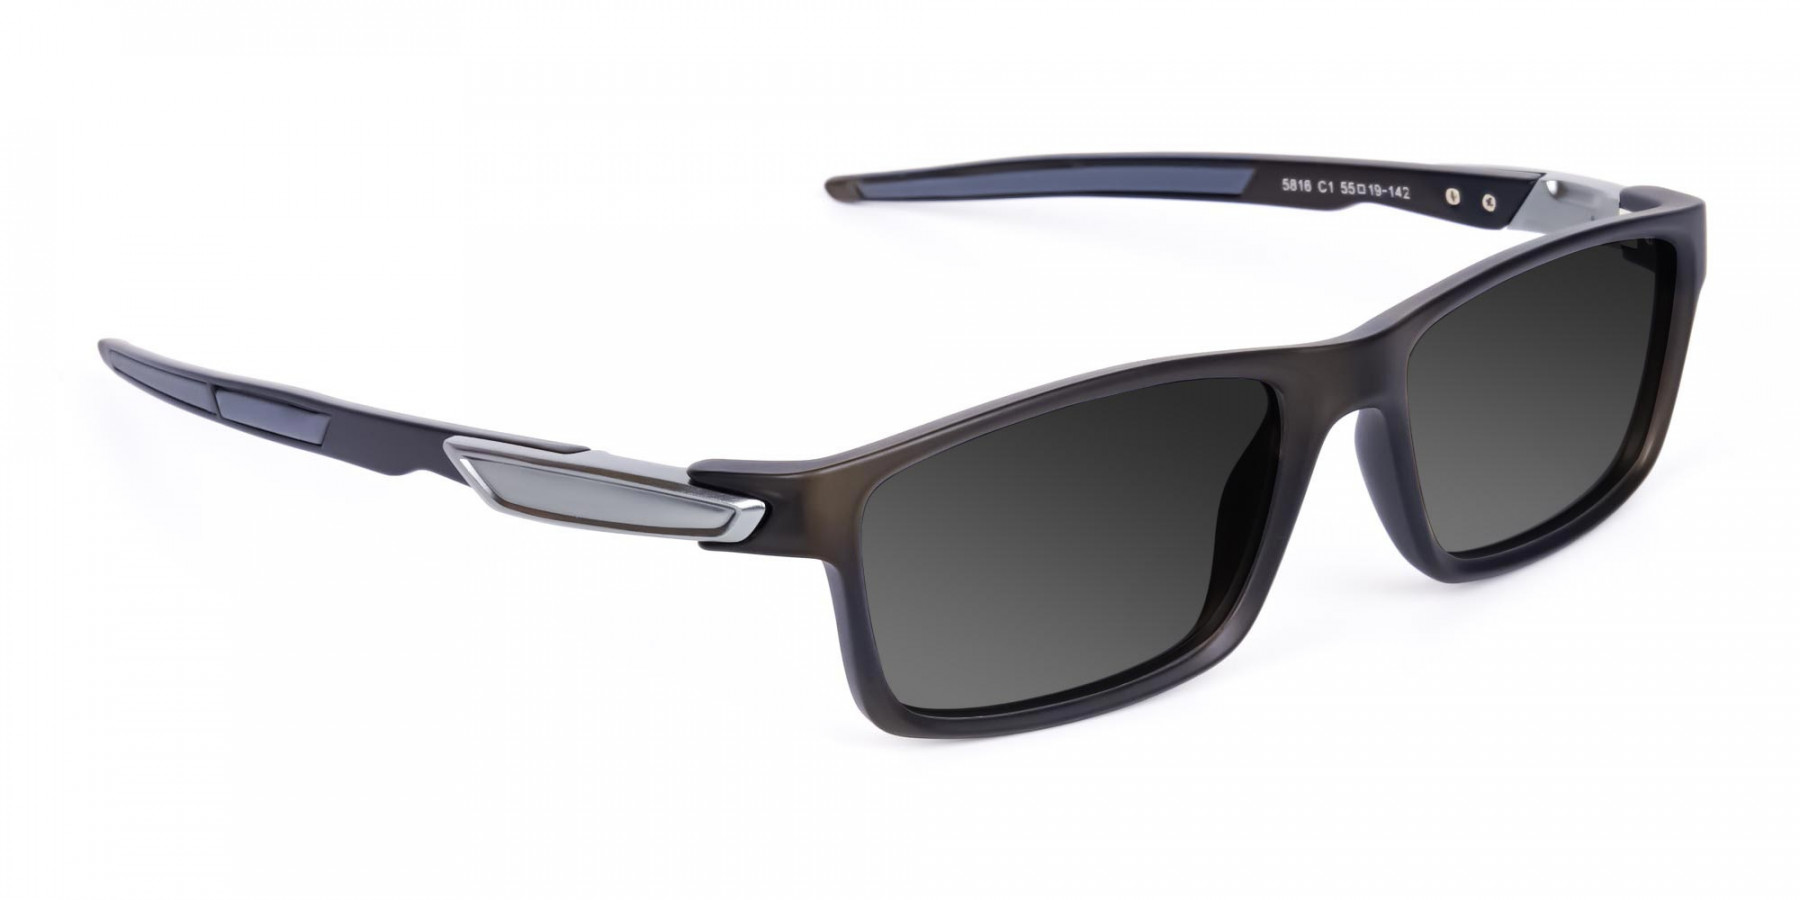 Black Rectangle Cycling Sunglasses For Men & Women with Grey Tint-3